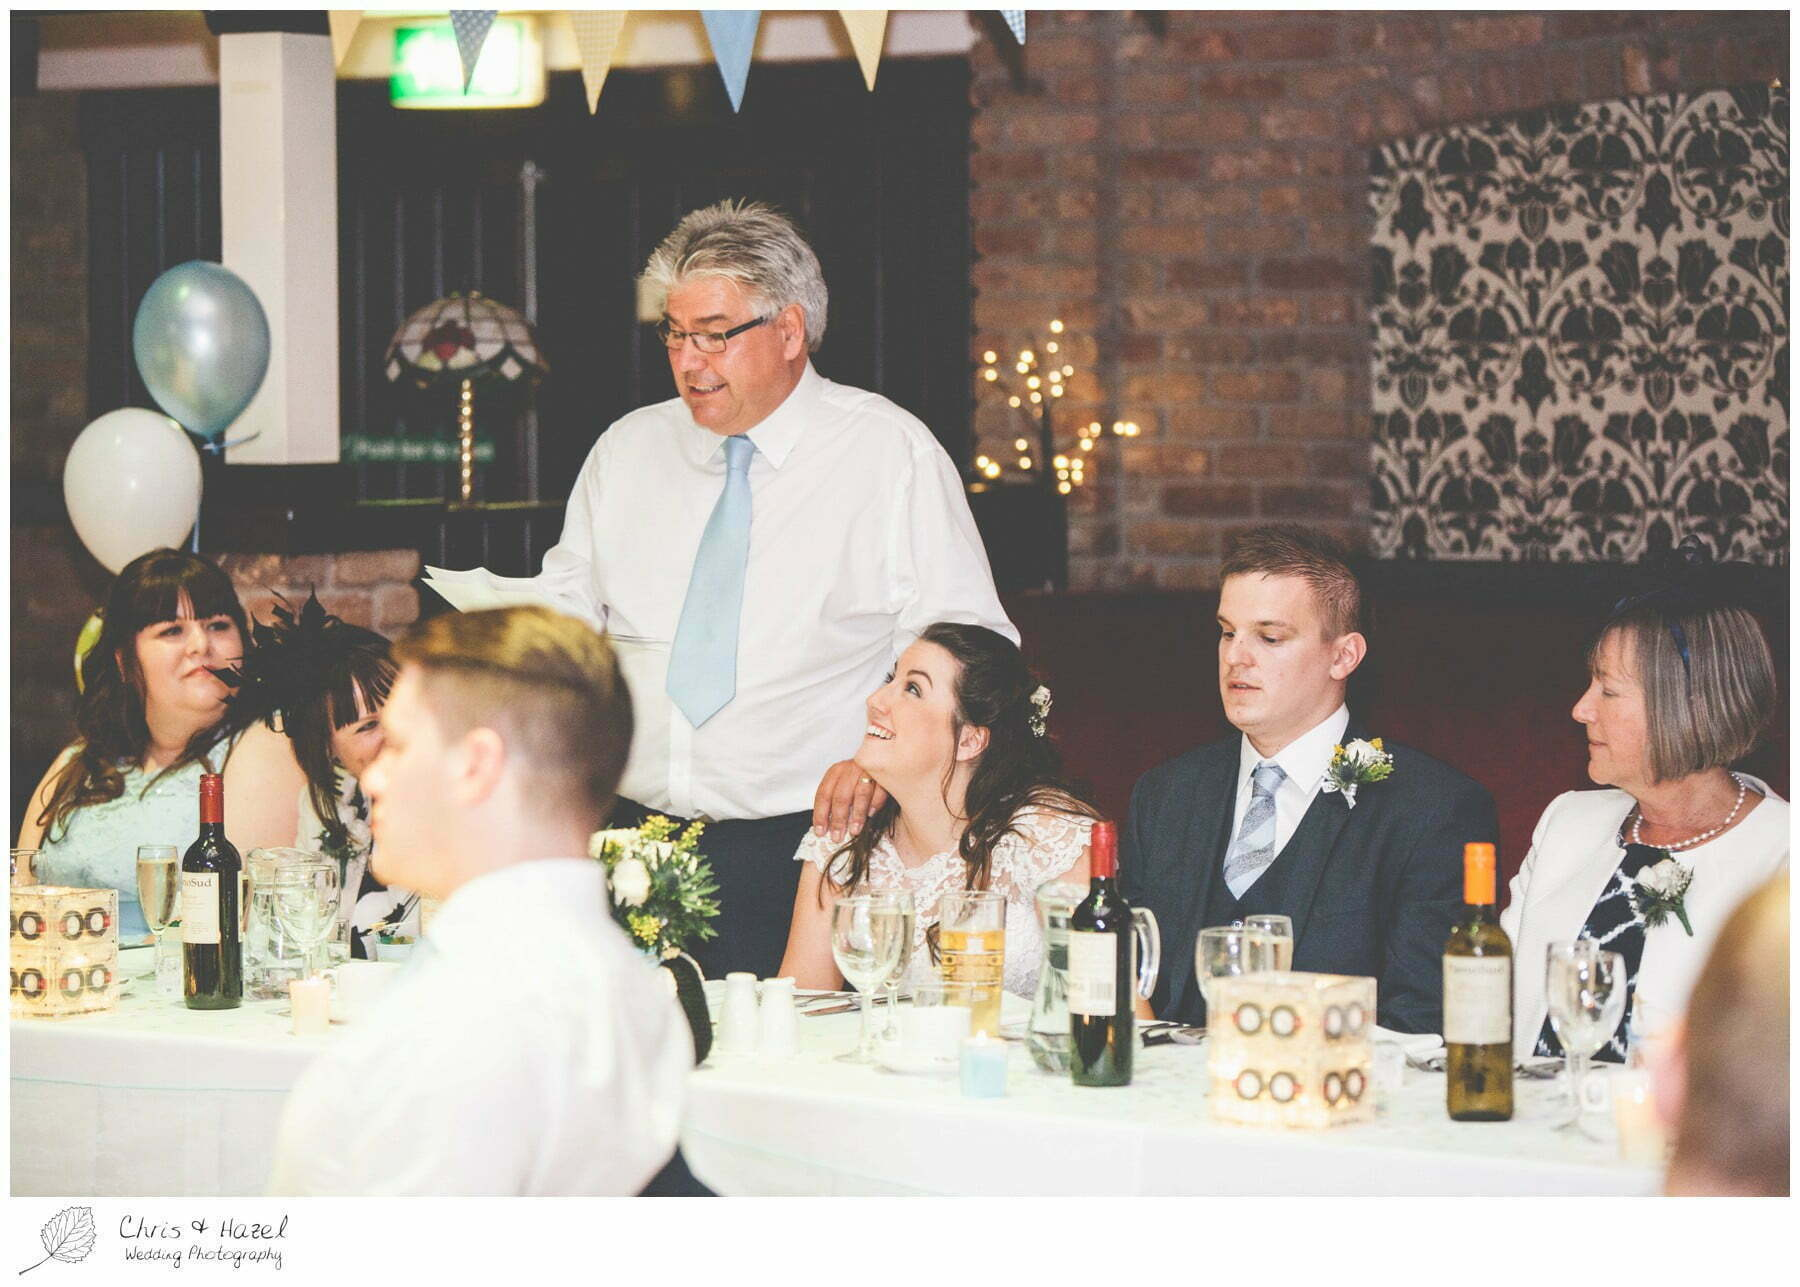 father of bride wedding speech, wedding, south milford Wedding Photographer, the engine shed, wetherby wedding venue, Wedding Photography wetherby, Chris and Hazel Wedding Photography, stevie pollard, stevie standerline, paul standerline,